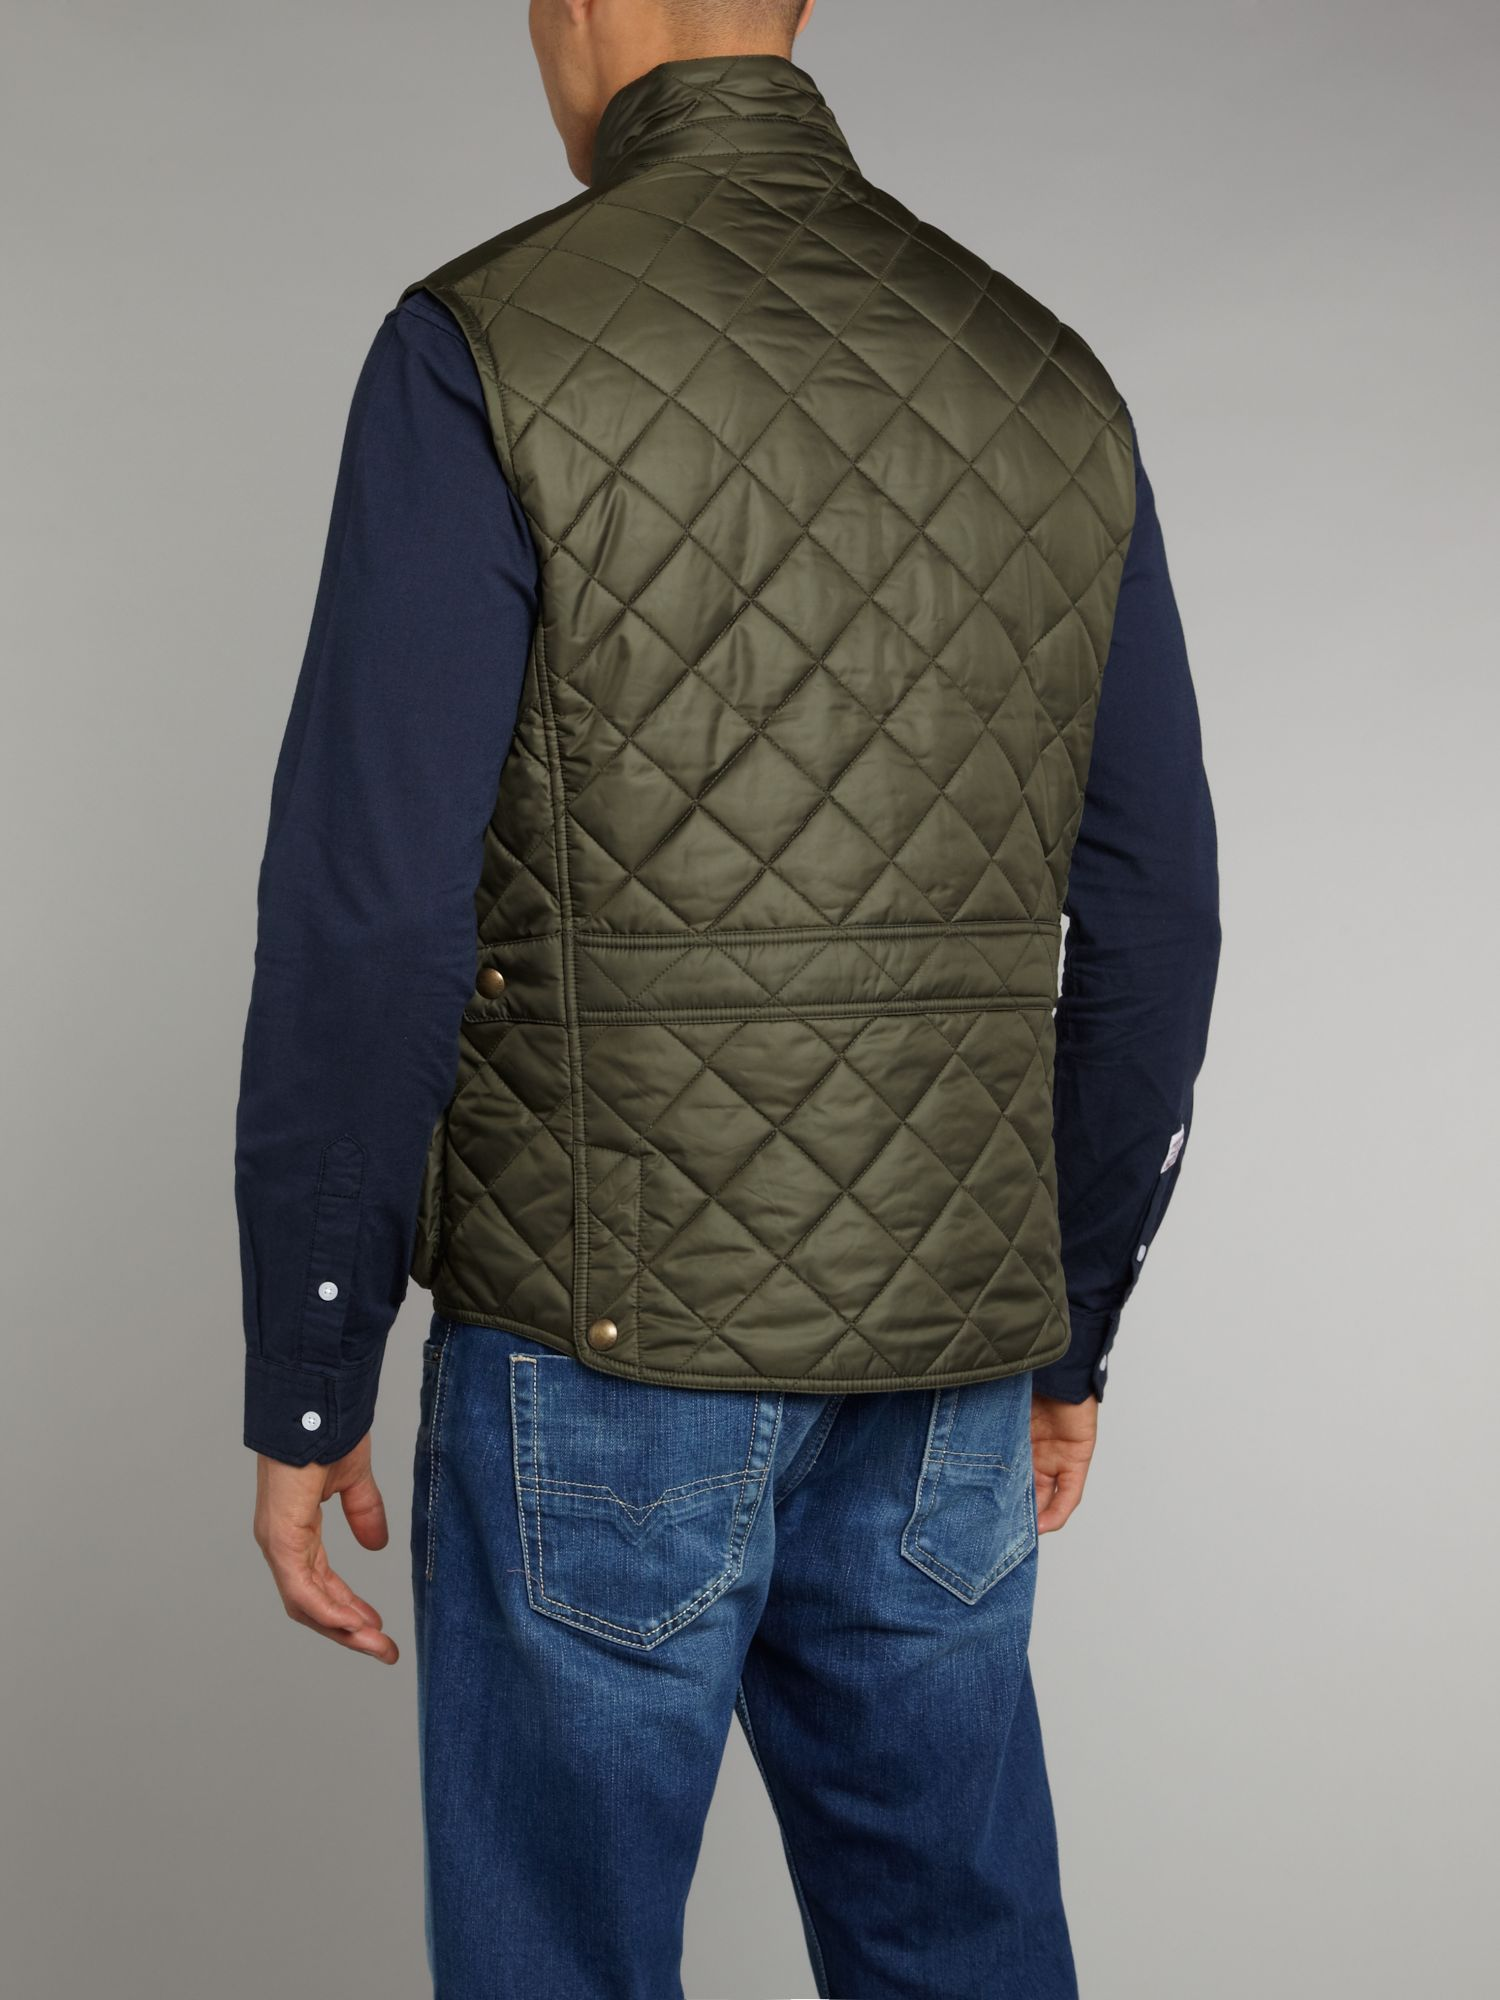 Polo ralph lauren Quilted Vest in Green for Men | Lyst : ralph lauren quilted vest mens - Adamdwight.com